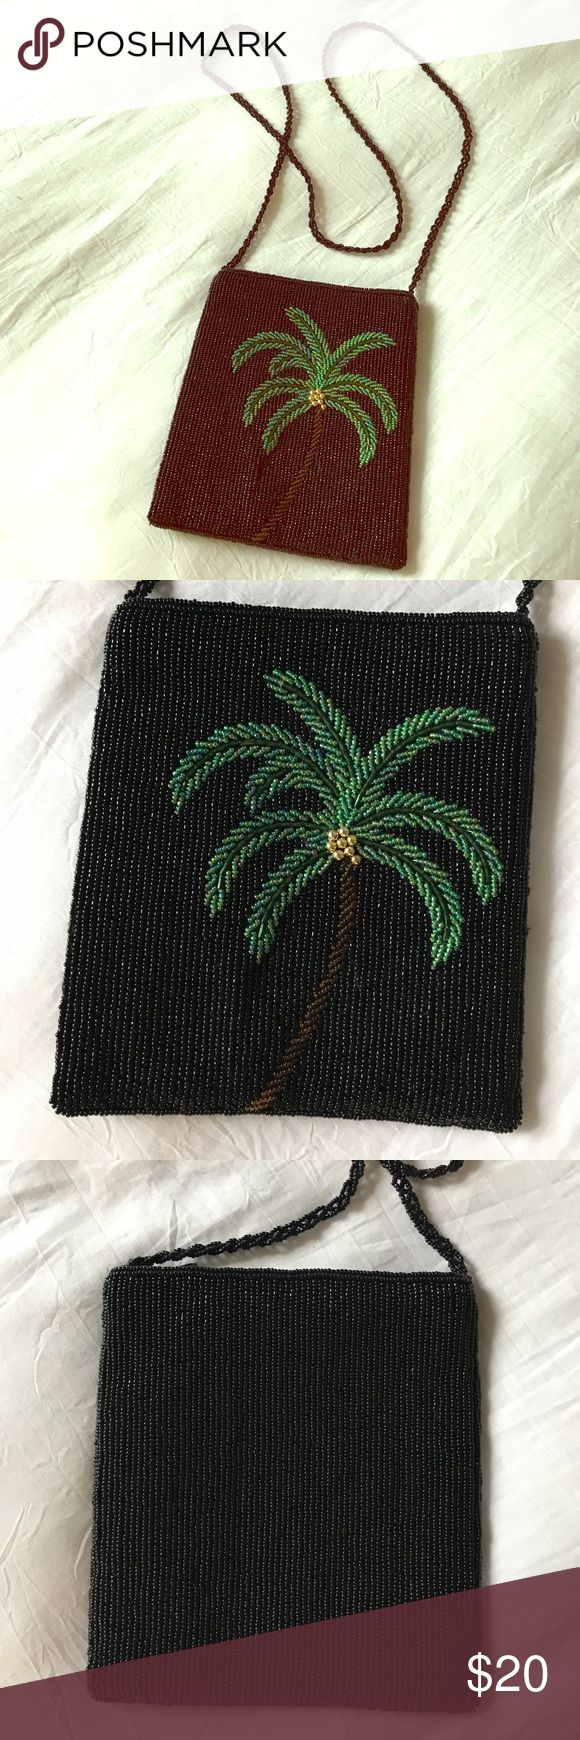 Beaded palm tree bag petite beaded bag with palm tree design on front. Back is solid black, beaded braid strap. 7 inches tall and 6 inches wide with a zipper closure and lined inside with extra loose beads. Bags Mini Bags